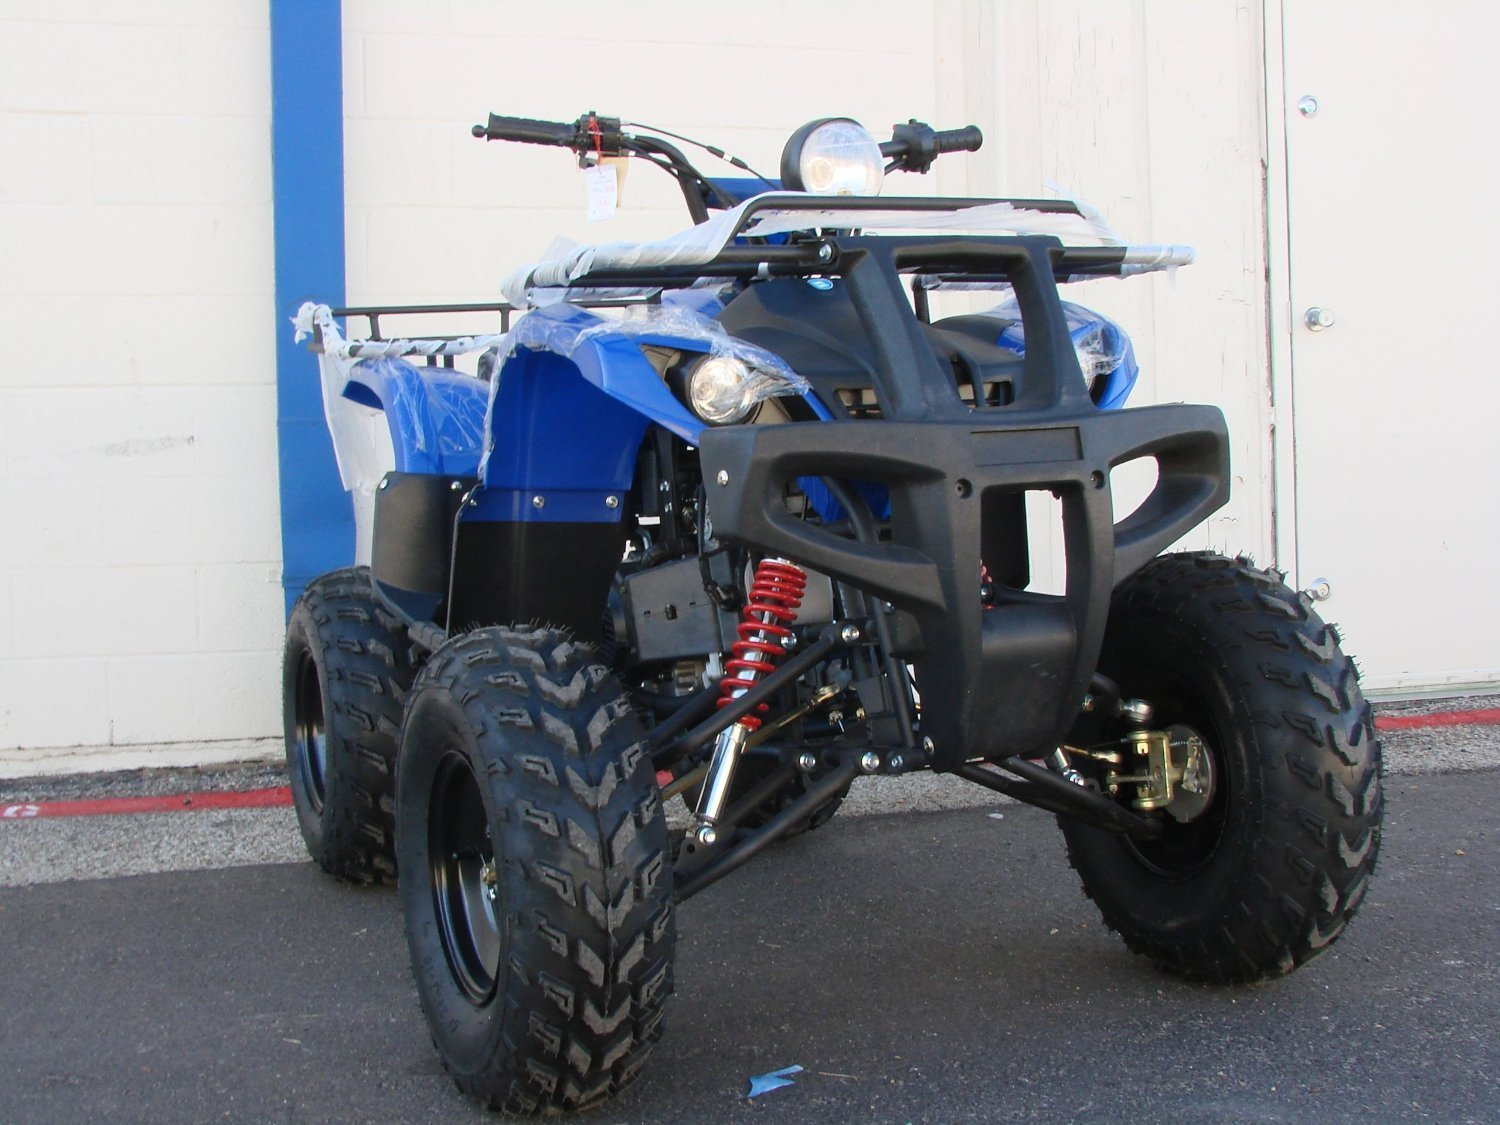 New Atv 150cc Full Size Fully Automatic With Reverse Tao 250cc Utility Wiring Diagram Automotive